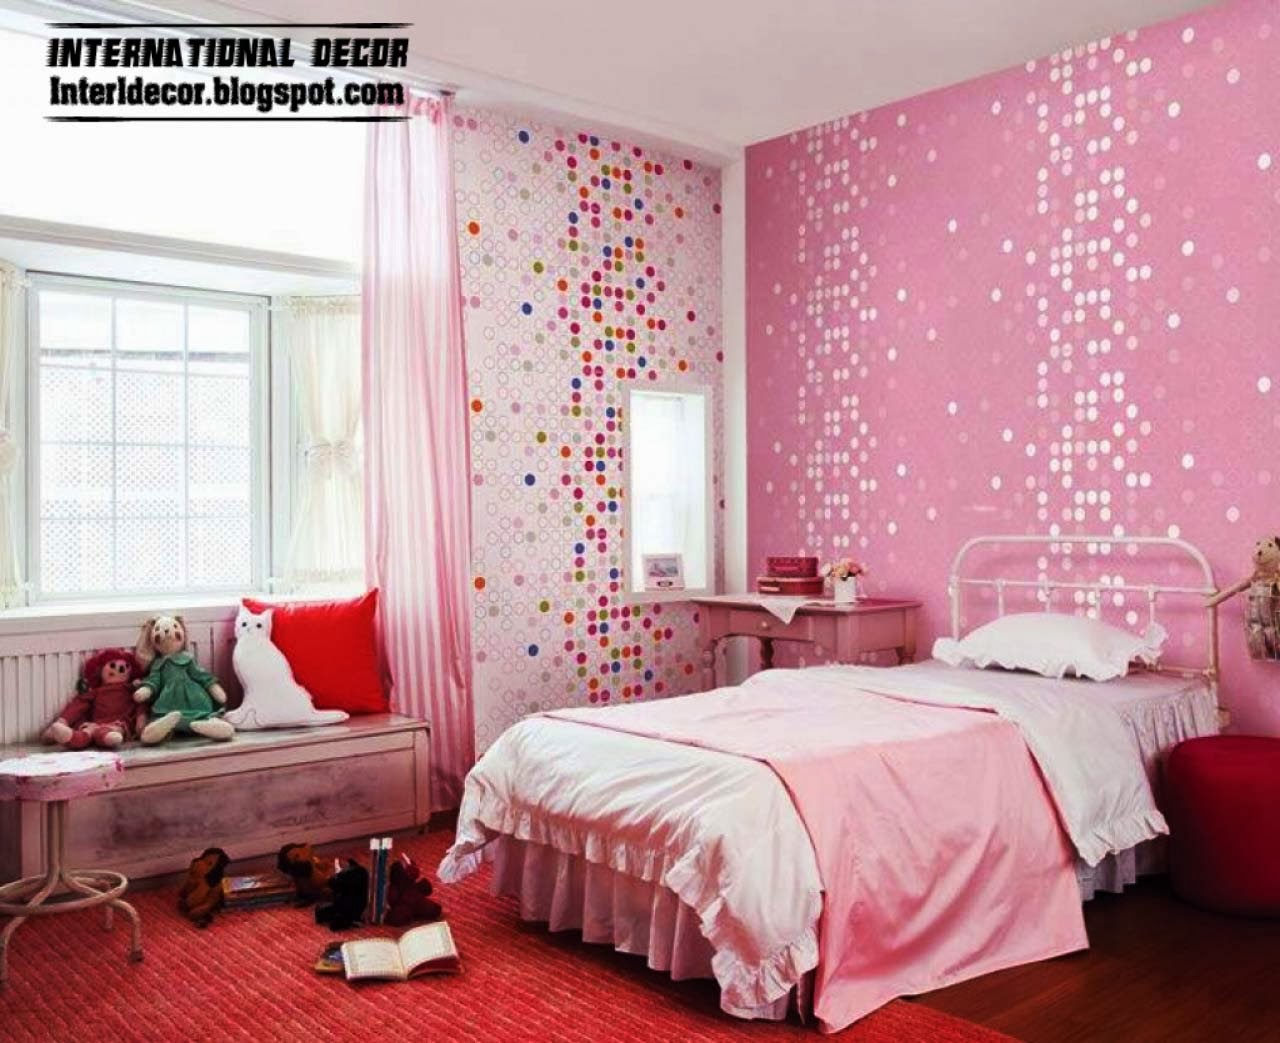 Girls Bedroom Ideas 2014 Modern Girls Room Pink Luxury Girls Bedroom